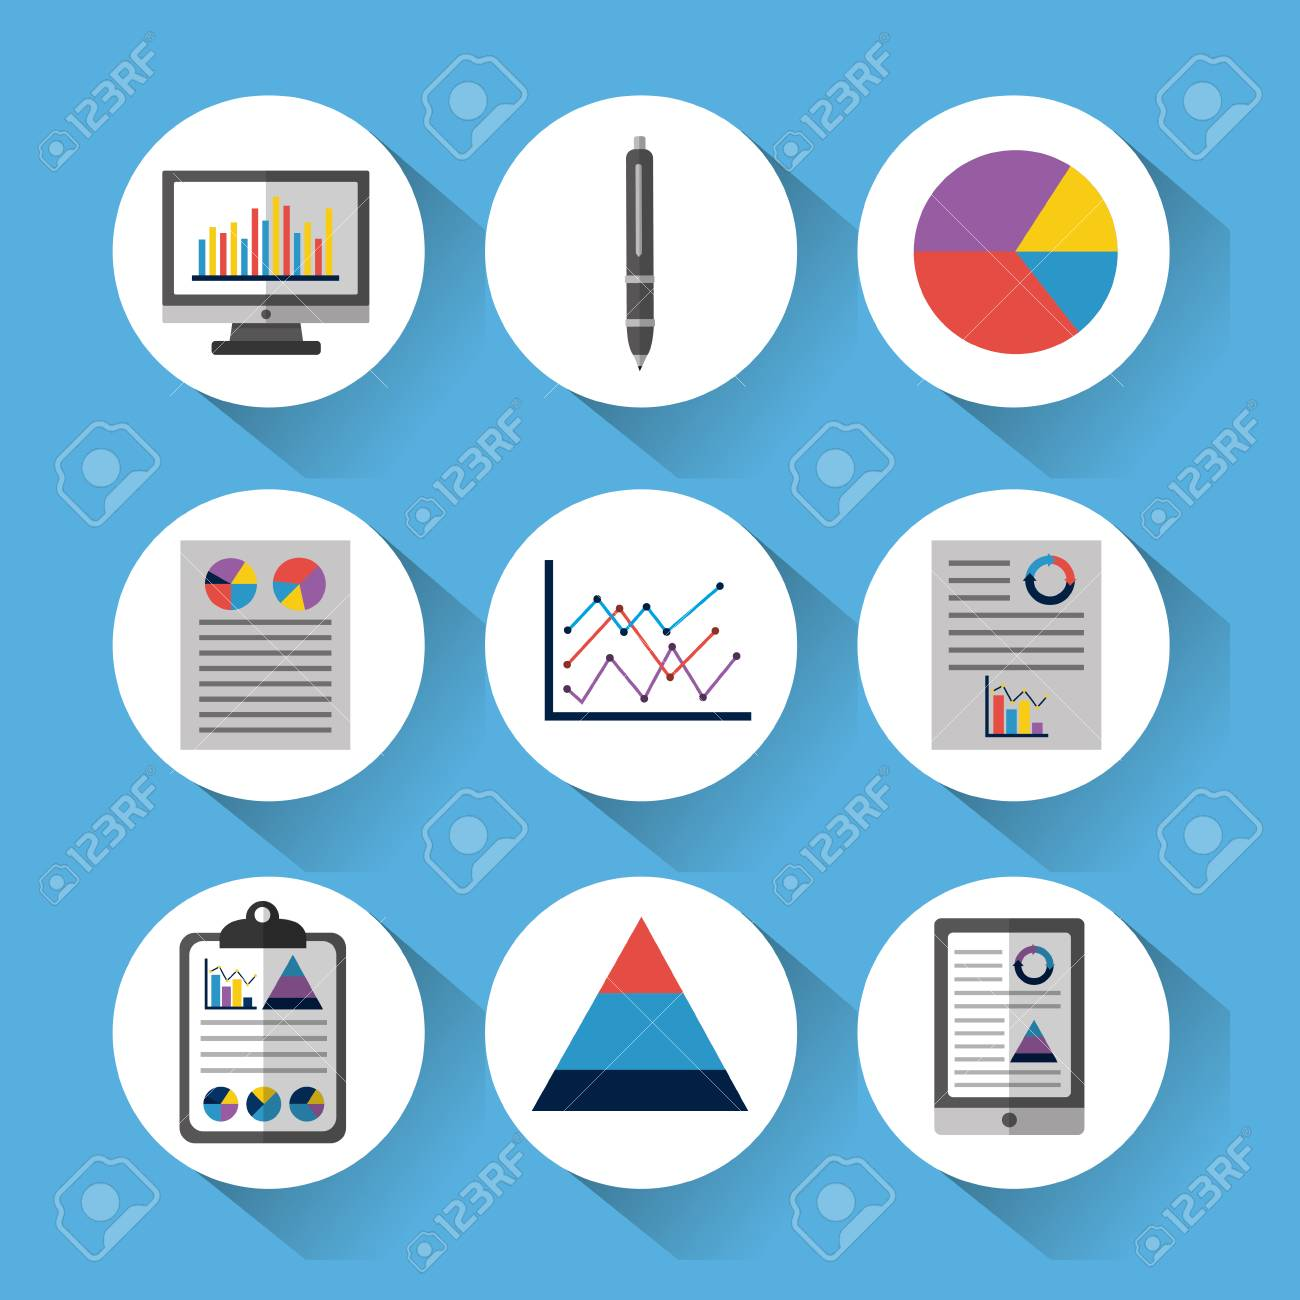 hight resolution of statistic data tools finance diagram and graphic chart business vector illustration stock vector 96901257